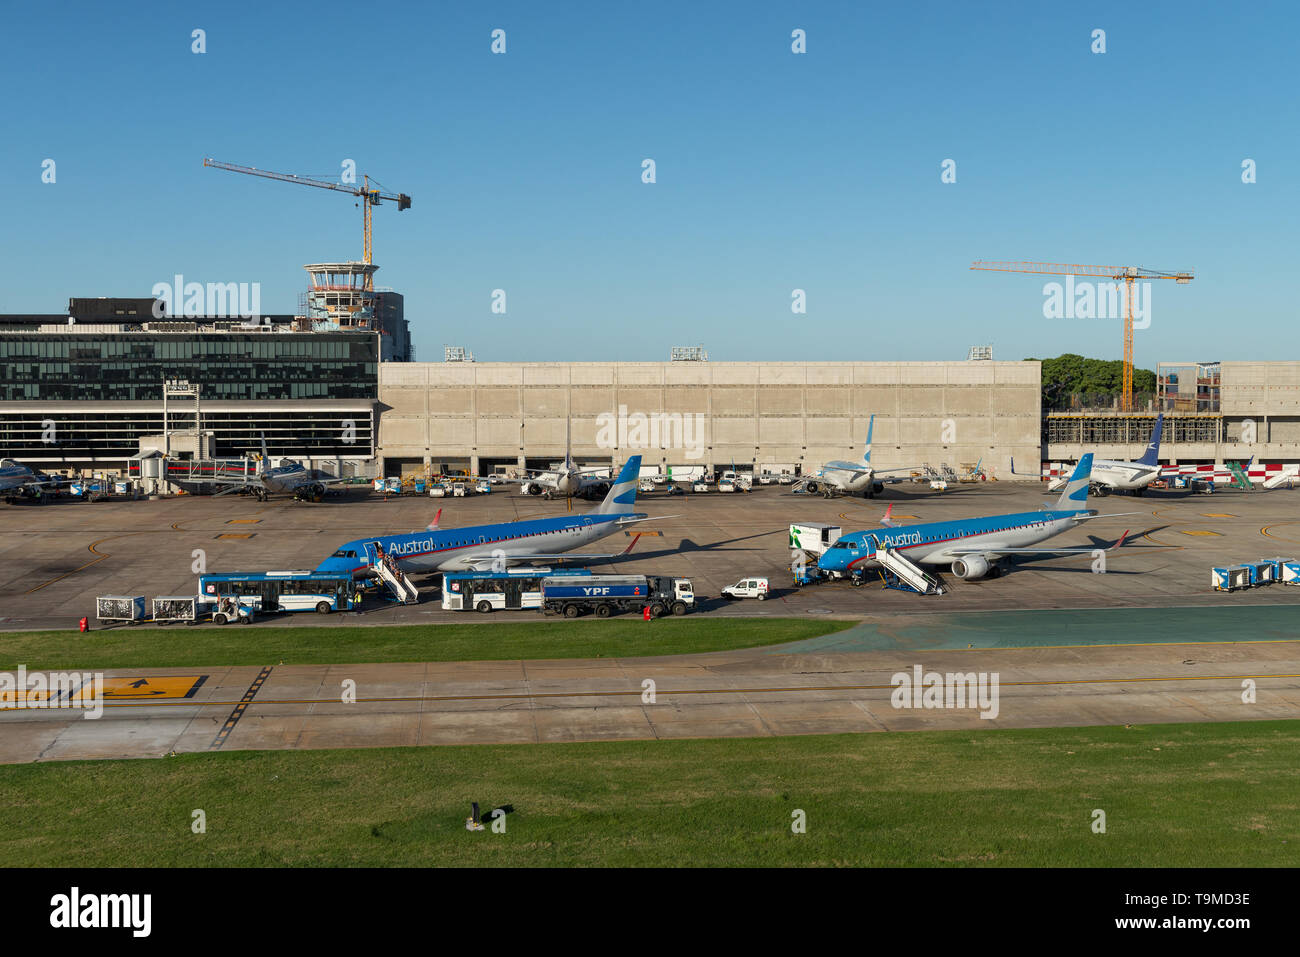 Aerial image showing planes of type Embraer ERJ-190AR of the company Austral boarding at Jorge Newbery Airfield (Spanish: Aeroparque 'Jorge Newbery',  - Stock Image